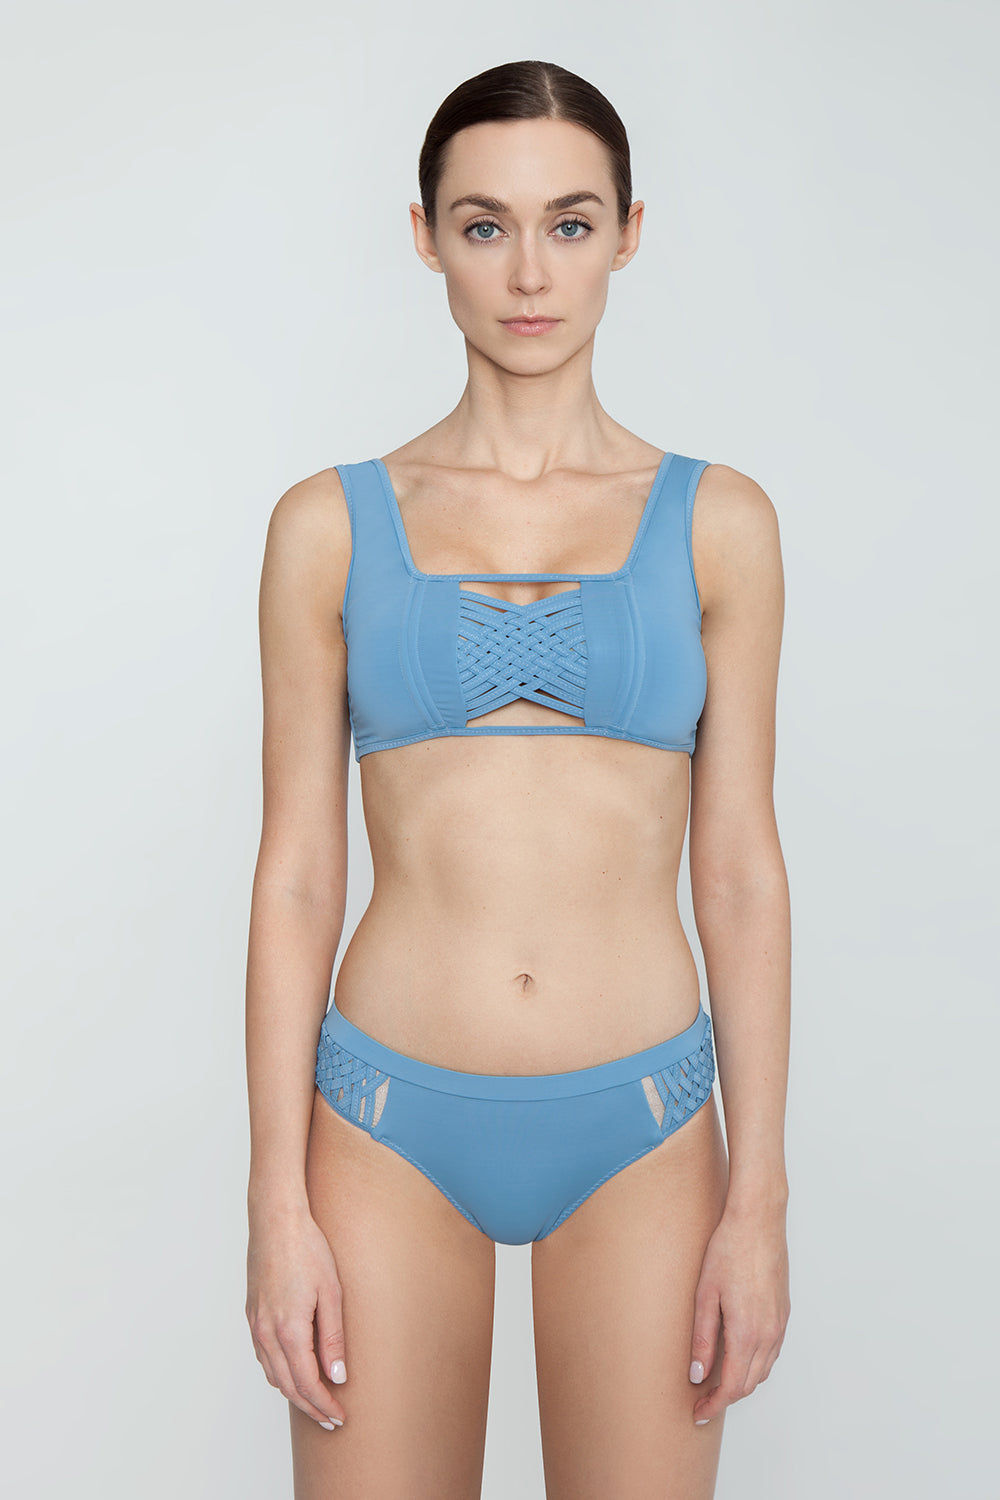 CLUBE BOSSA Perle Weaving Hipster Bikini Bottom - Riviera Blue Bikini Bottom | Riviera Blue| Clube Bossa Perle Weaving Hipster Bikini Bottom - Riviera Blue Features:  Hipster  Cheeky-moderate coverage  Side weaving detail Front View